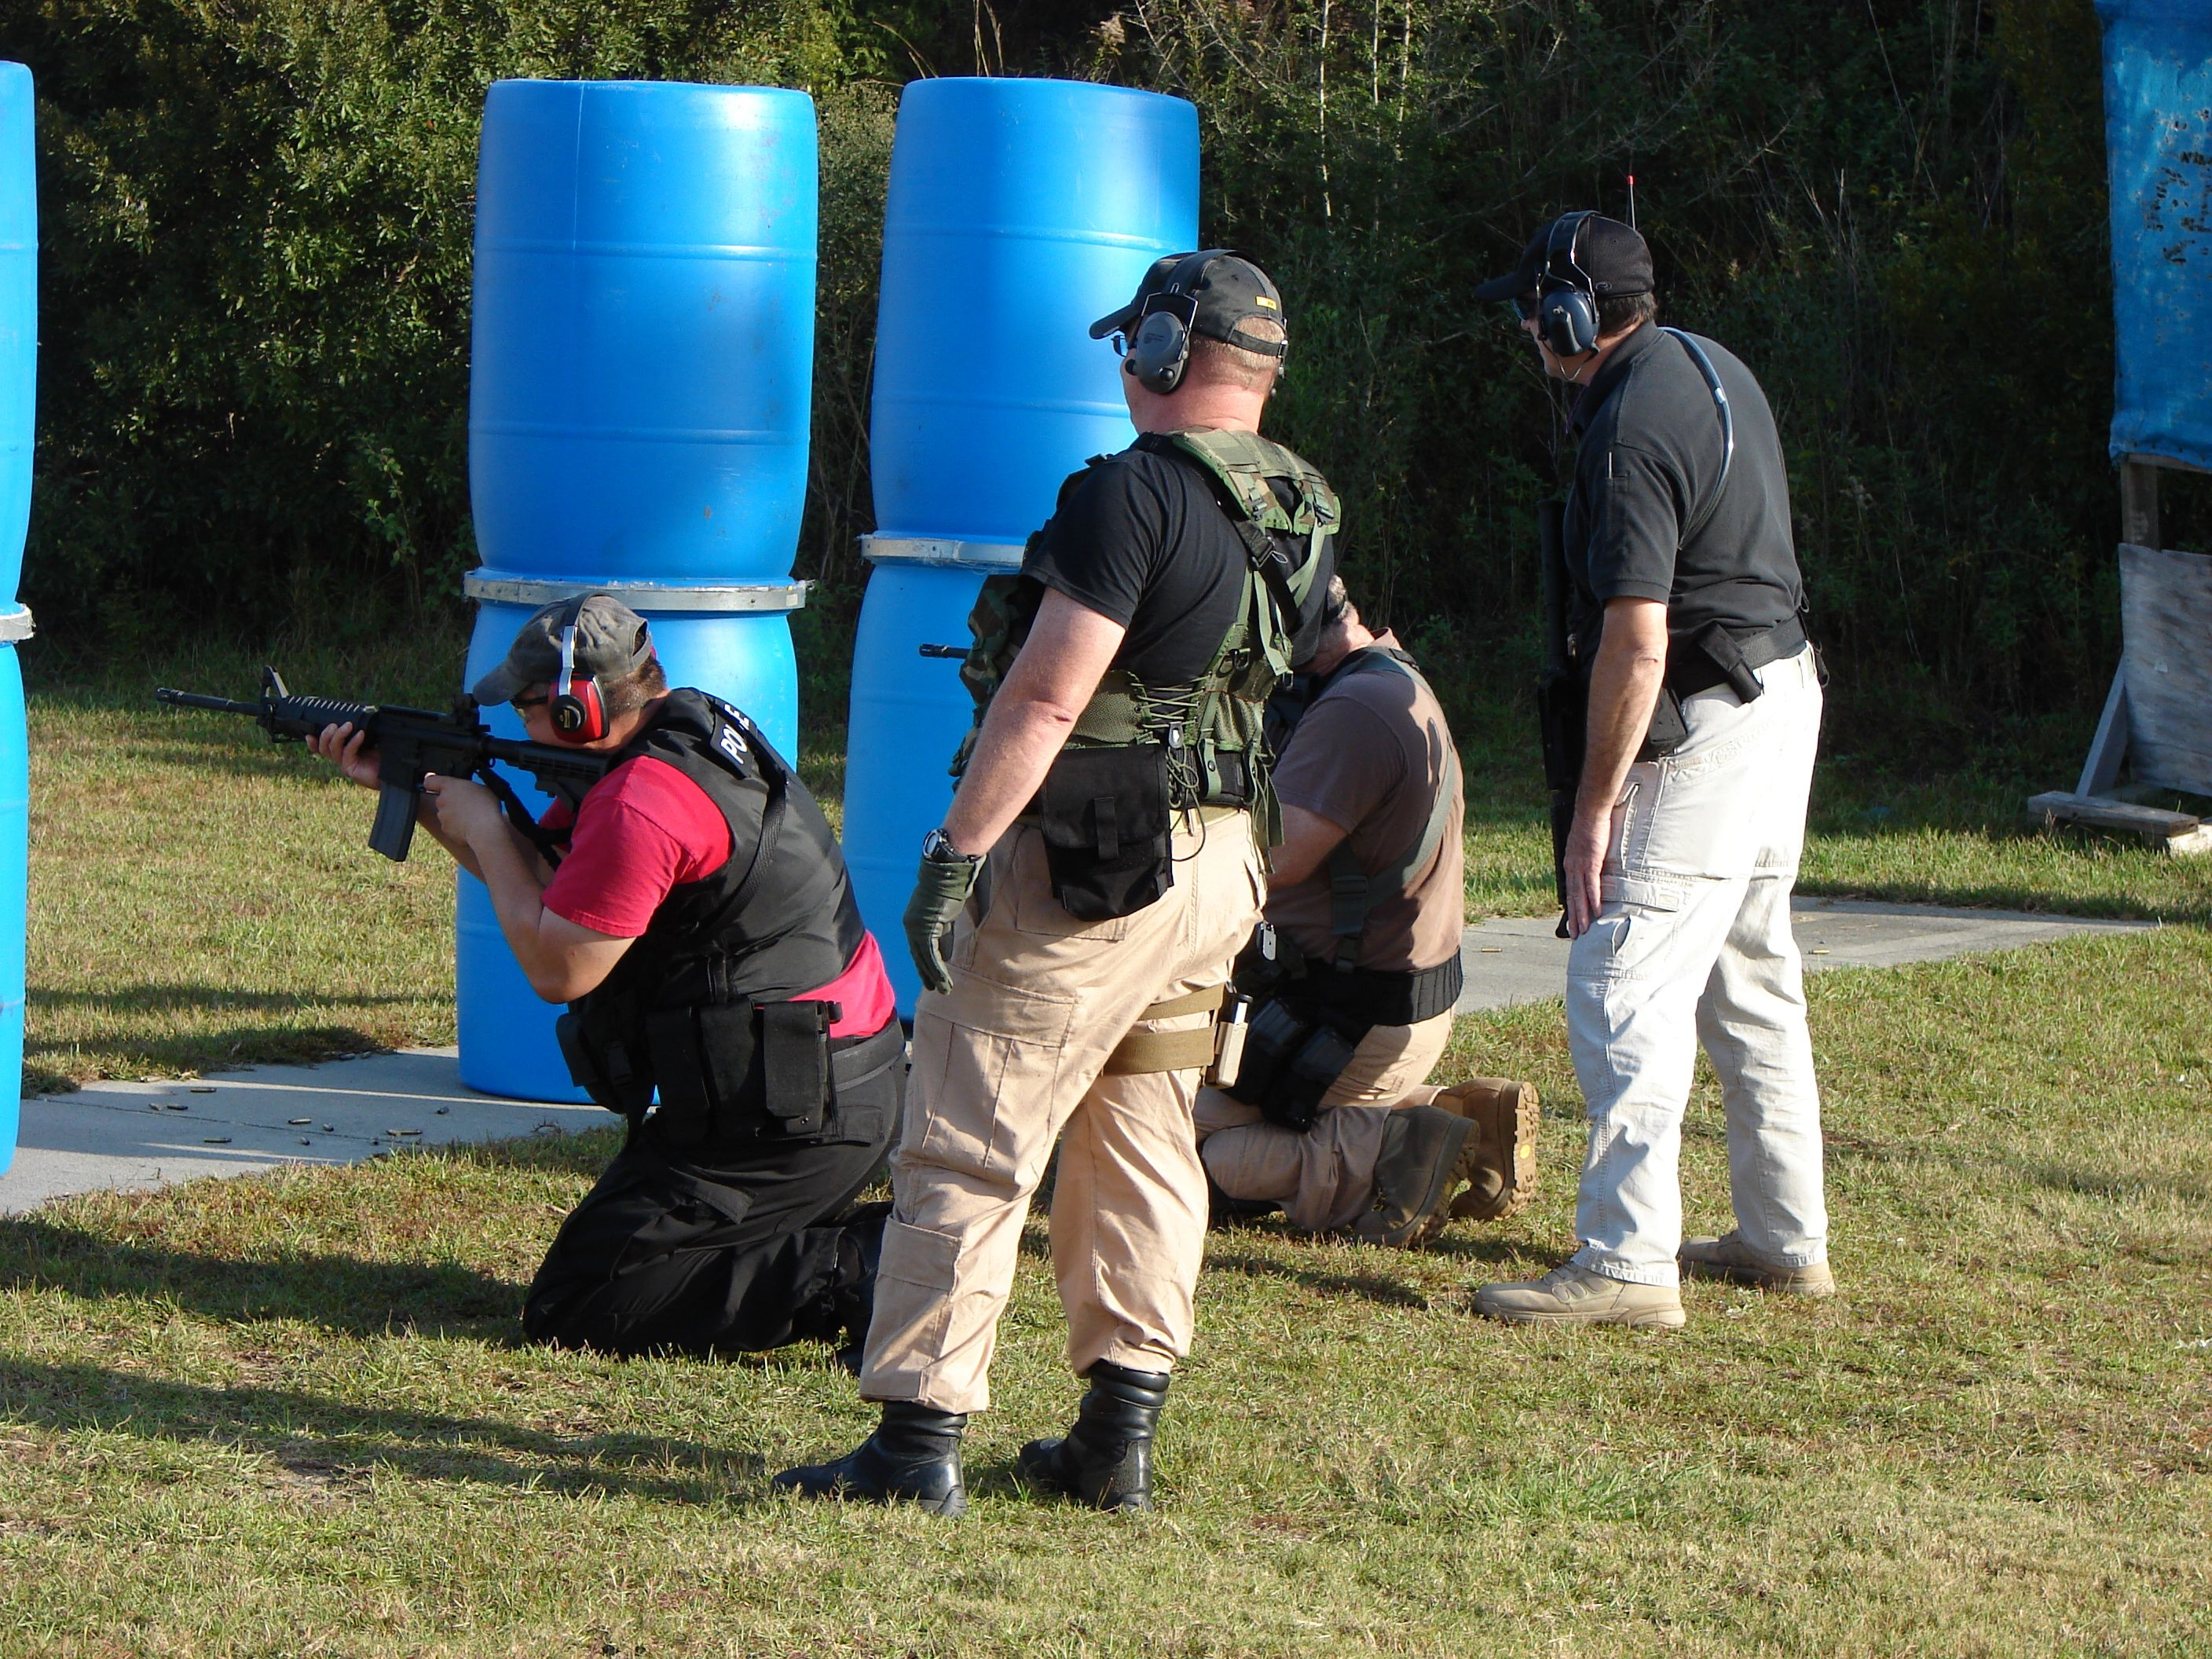 Shooting on the Move Firearms training, Central florida